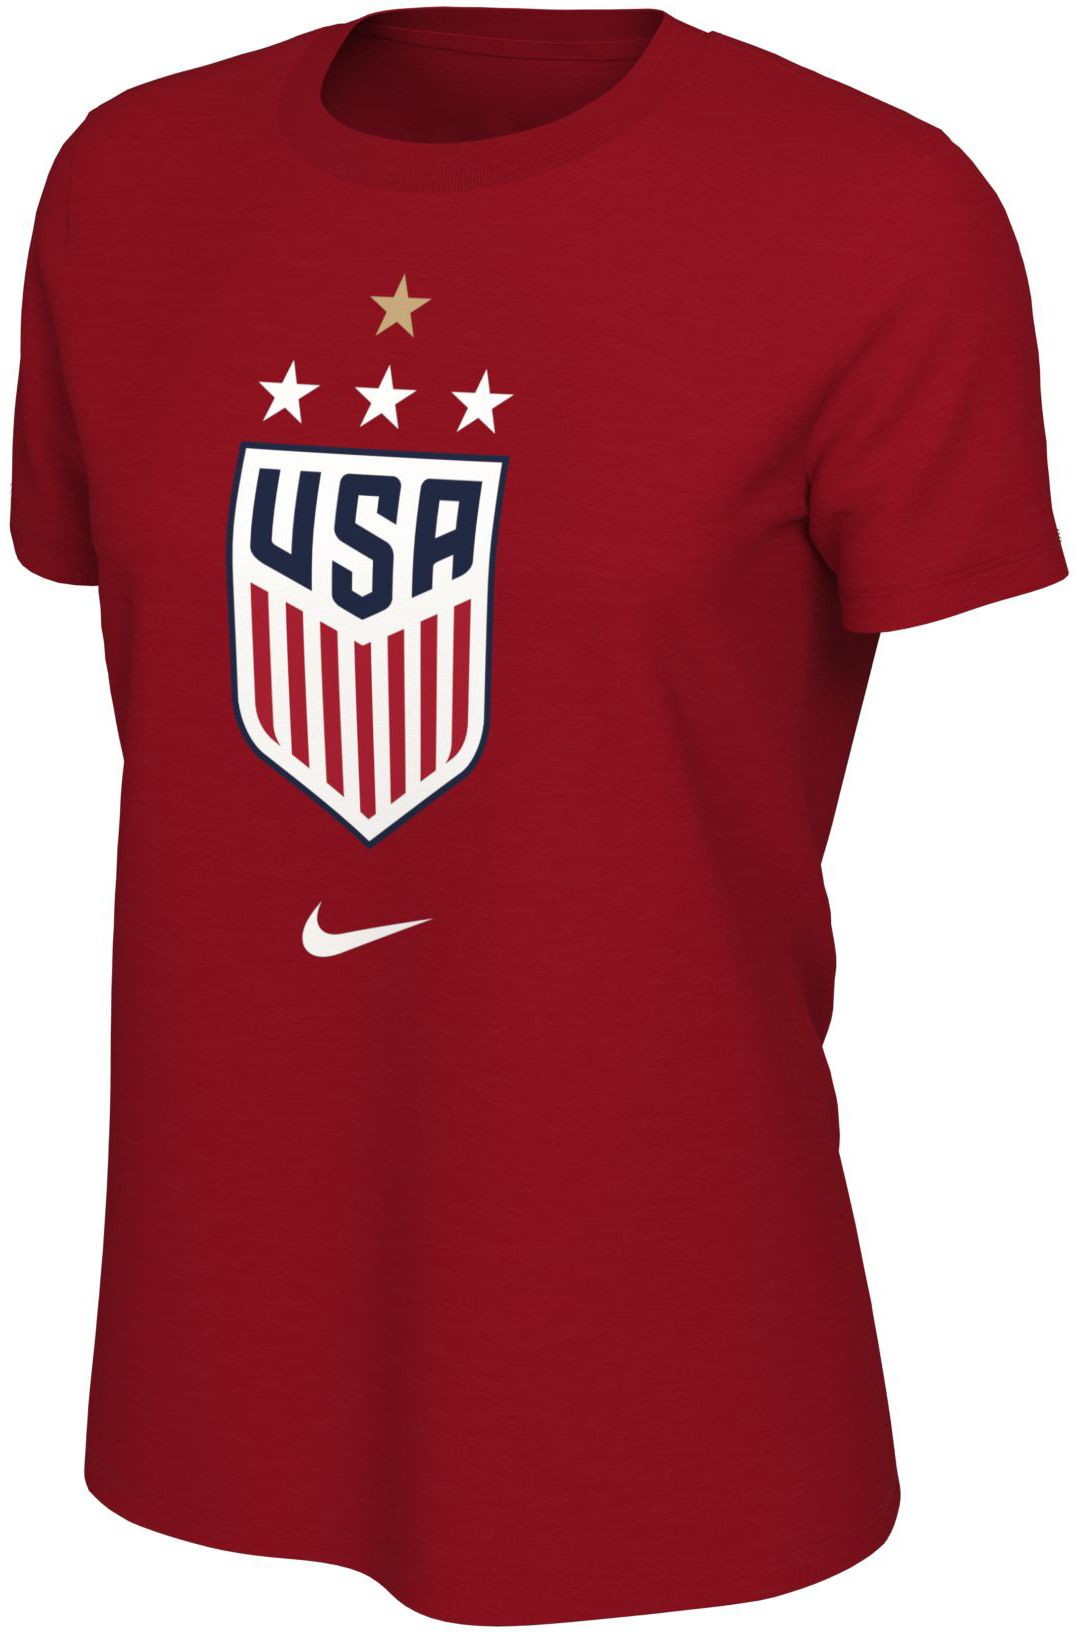 05c84dfe350c Nike Women's 2019 FIFA Women's World Cup Champions USA Soccer 4-Star Red T-Shirt.  noImageFound. Previous